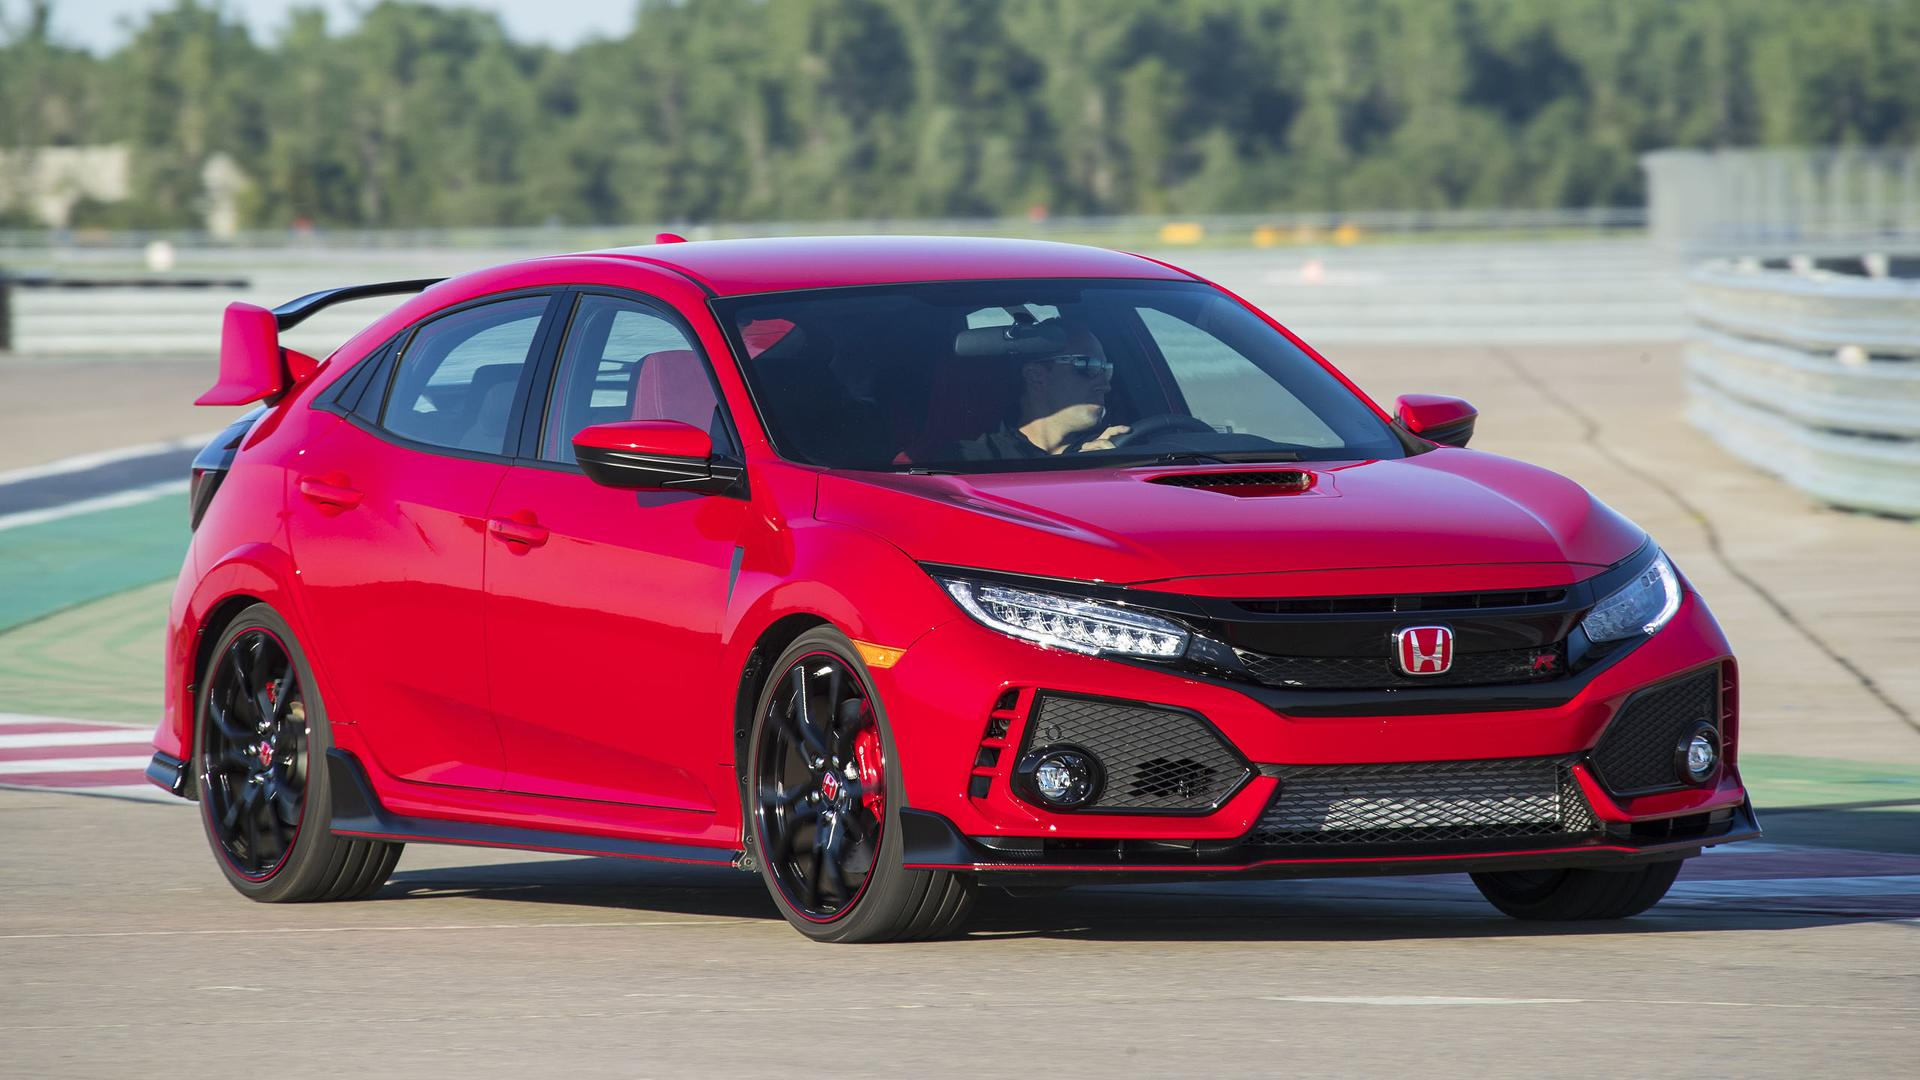 Honda Civic Type R Will Likely Get More Power And Maybe AWD